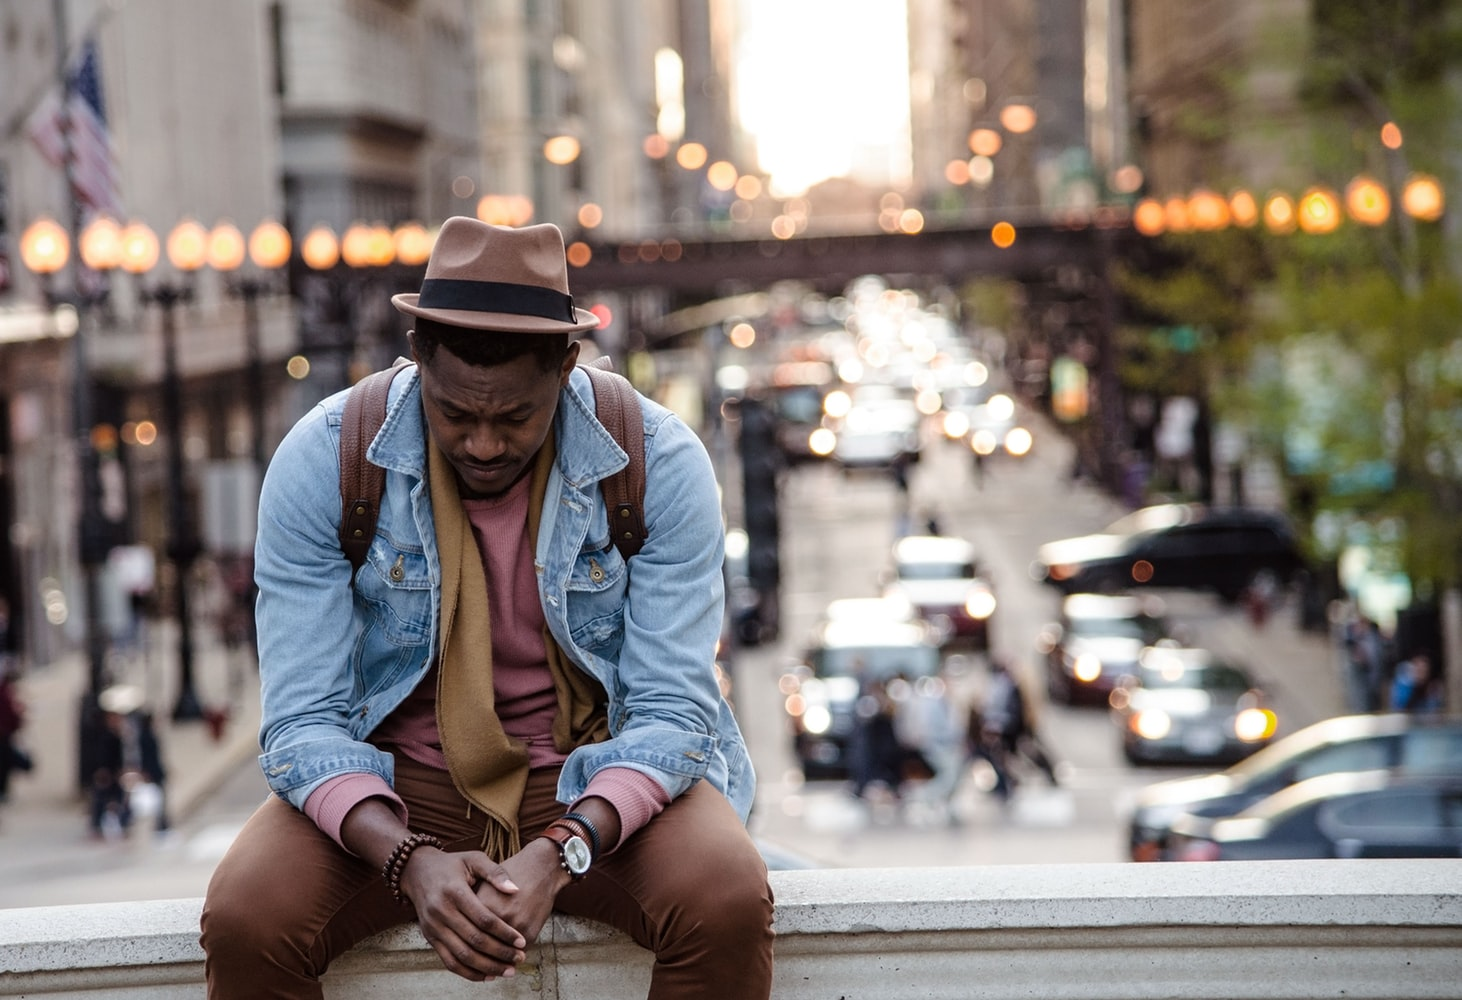 Sad African American man looking down while sitting on a ledge in a city